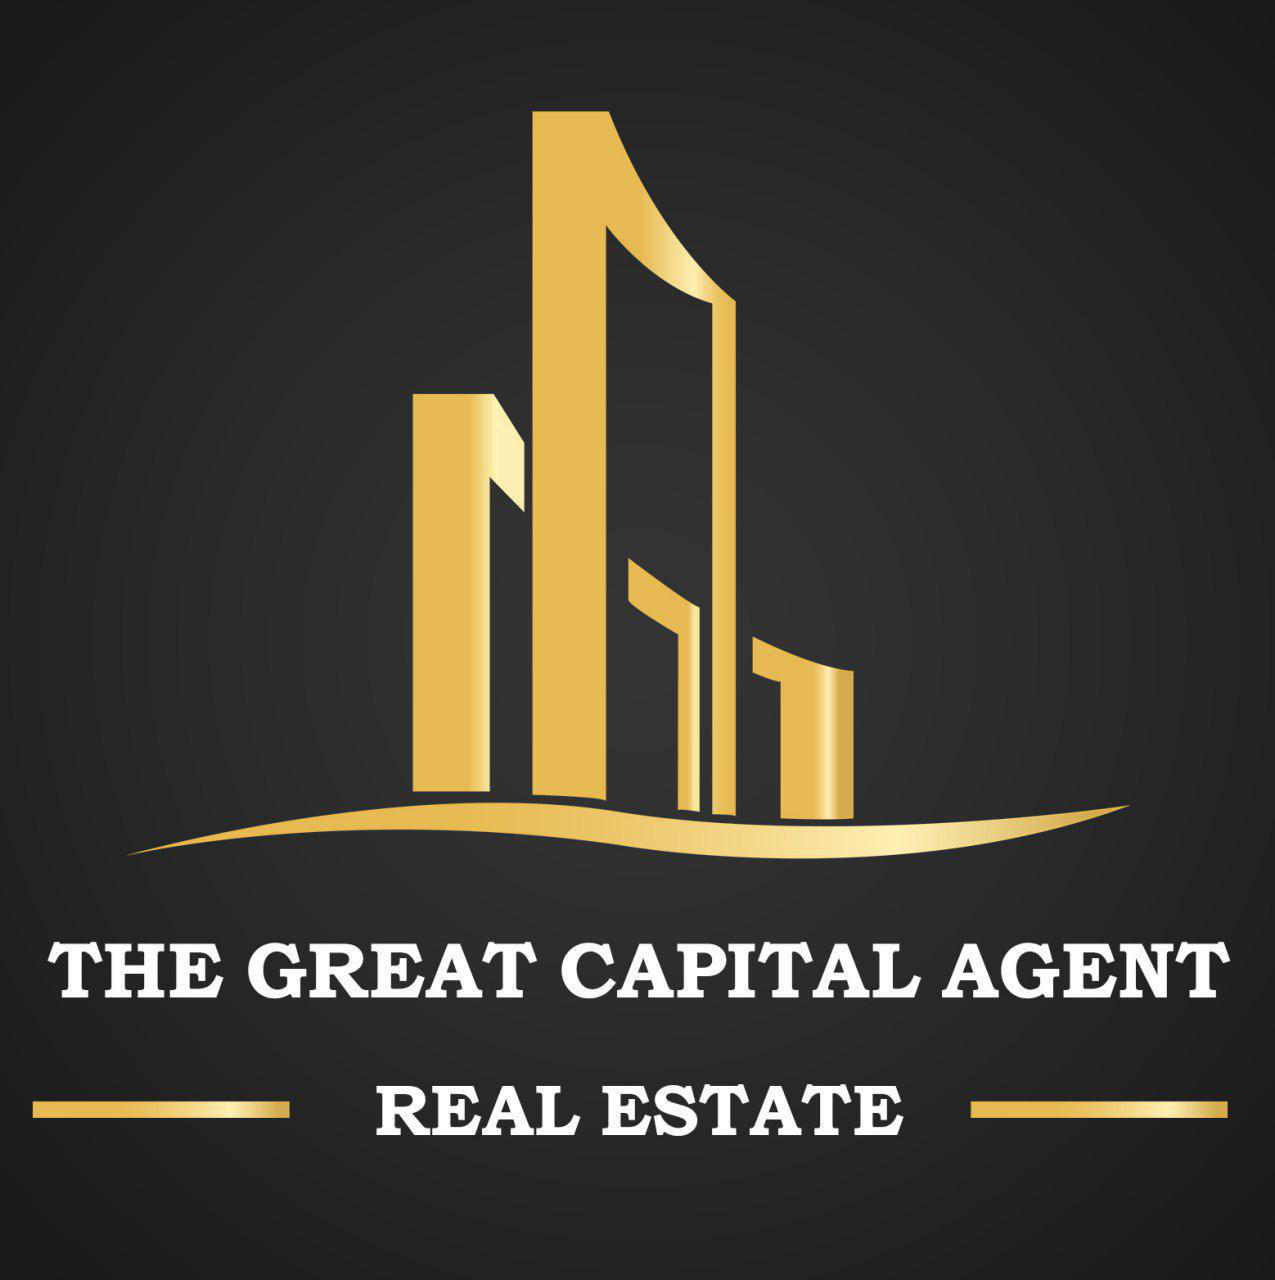 The Great Capital Agent